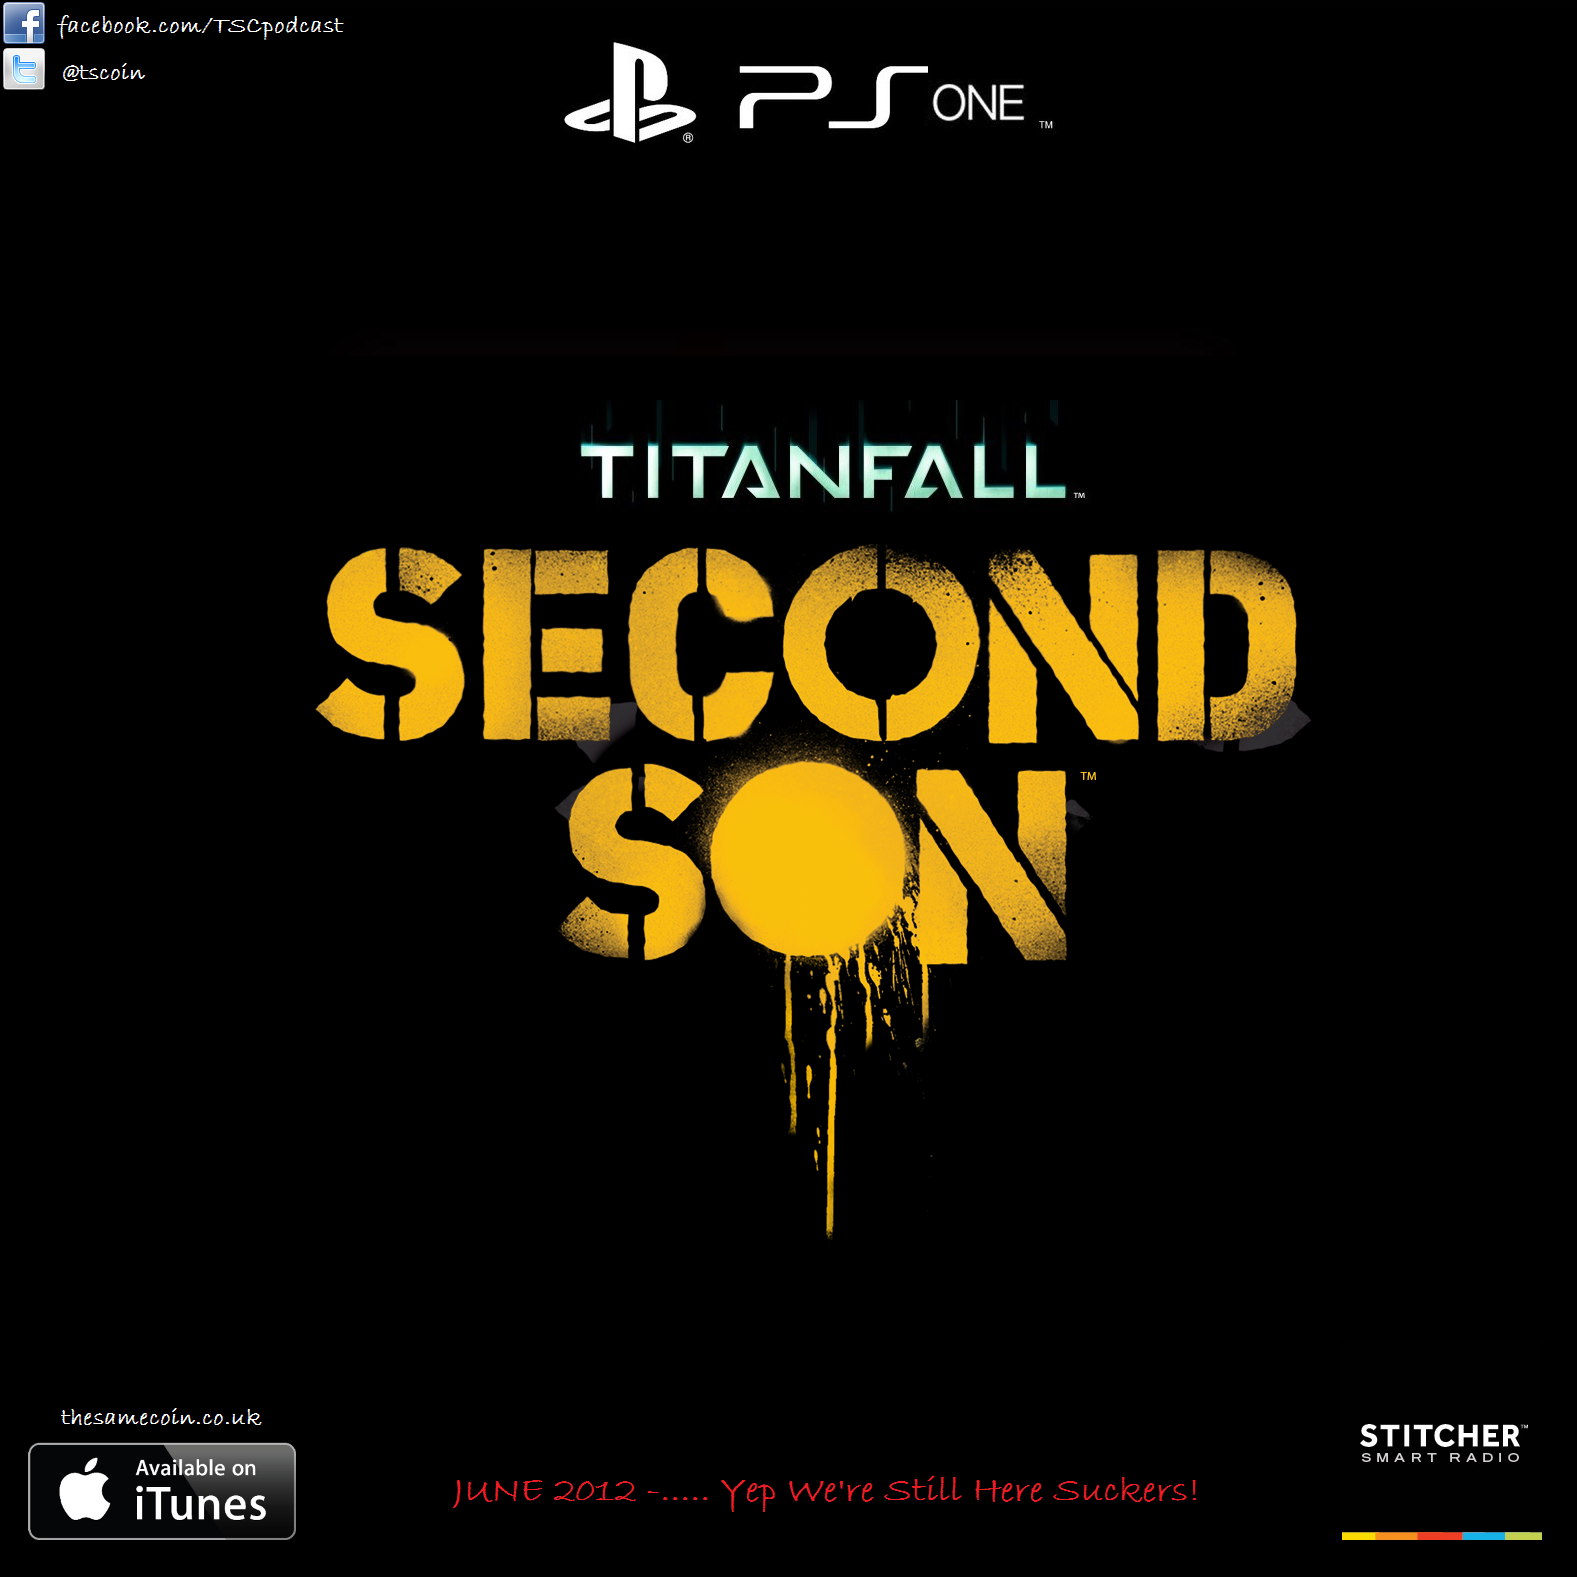 titanfall second sond psone